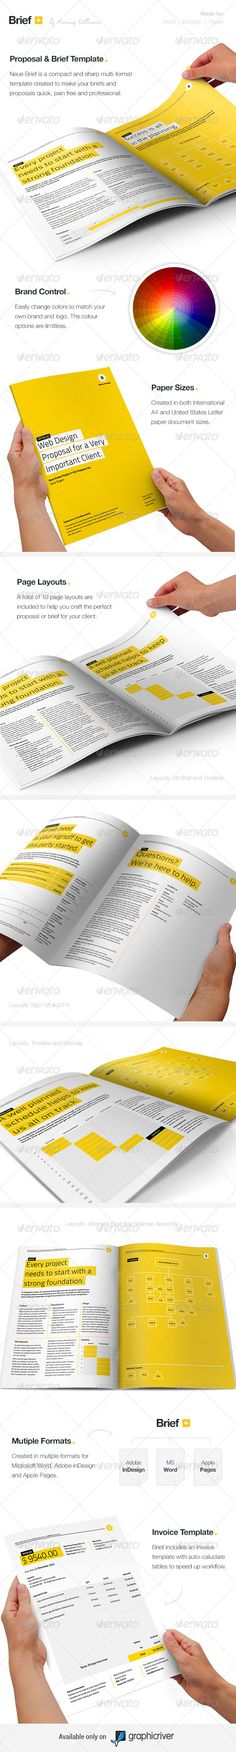 Brief - Proposal Template - Proposals & Invoices Stationery